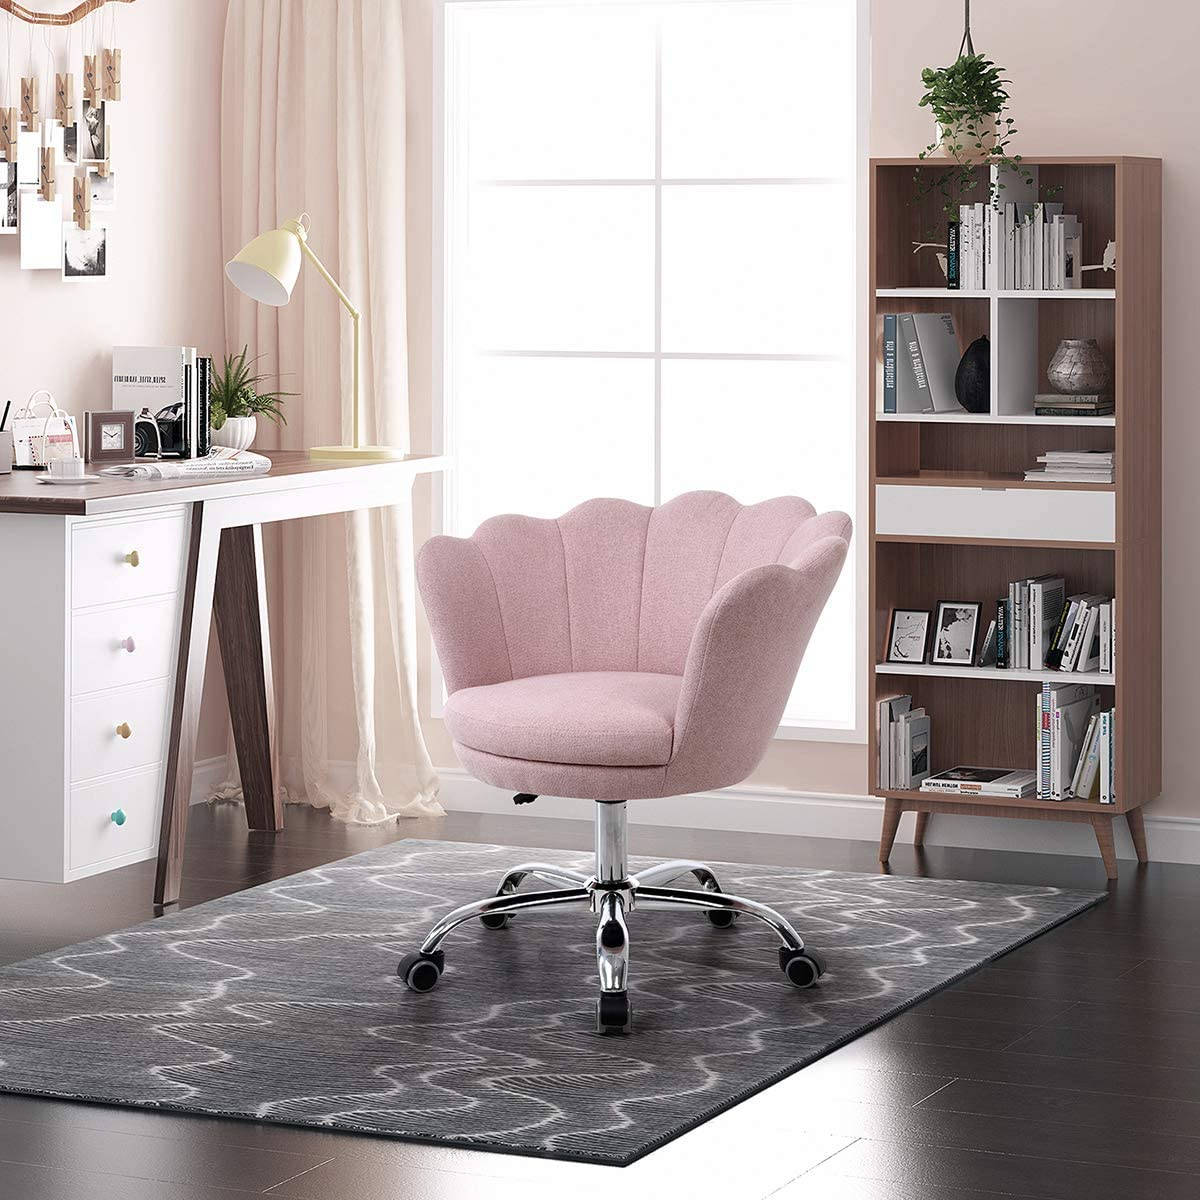 SSLine Home Office Chair,Modern Linen Fabric Desk Task Chair Accent Chair,Computer Desk Chair with Swivel and Adjustable,Accent Home Office Task Chair Executive Chair with Soft Seat (Pink-2)